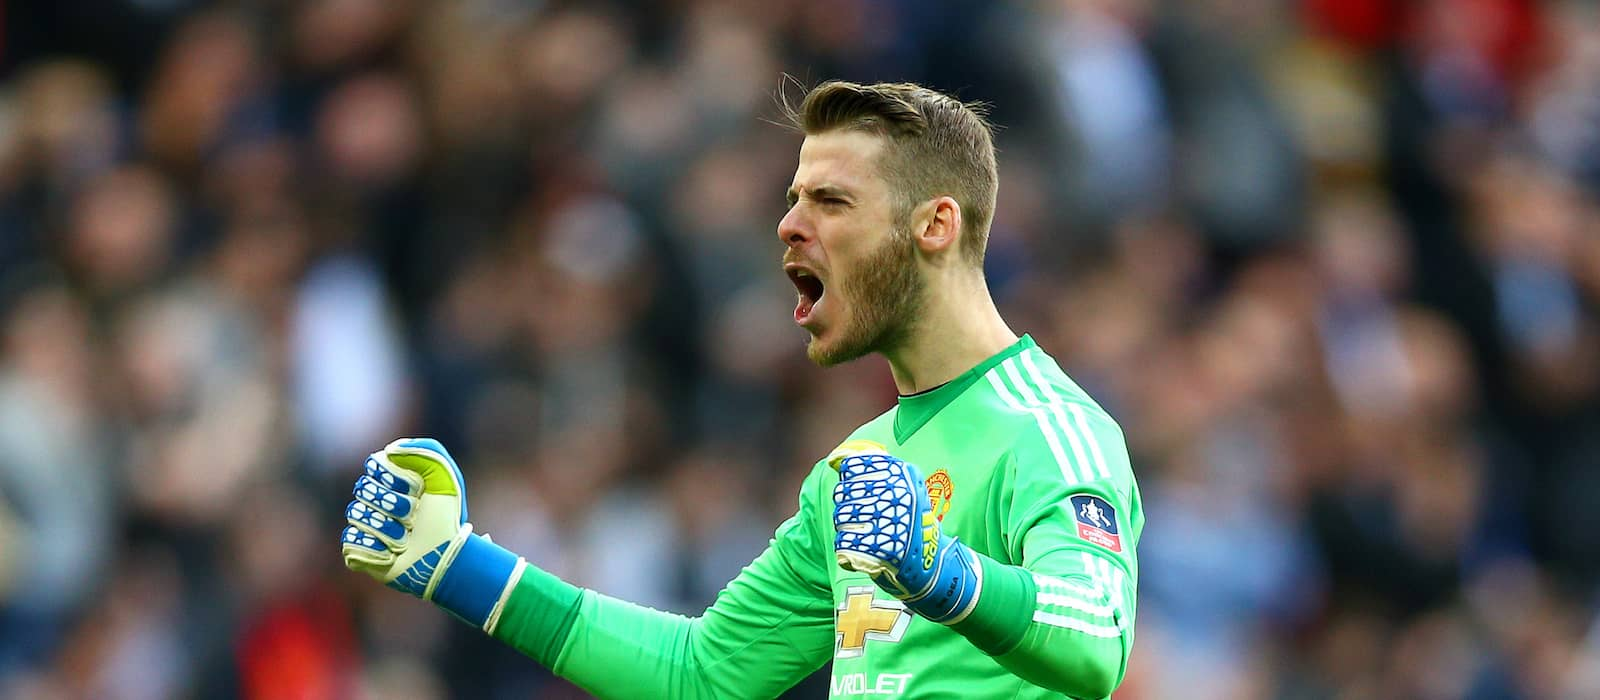 Video: David de Gea's passionate celebration after Anthony Martial winner vs Everton